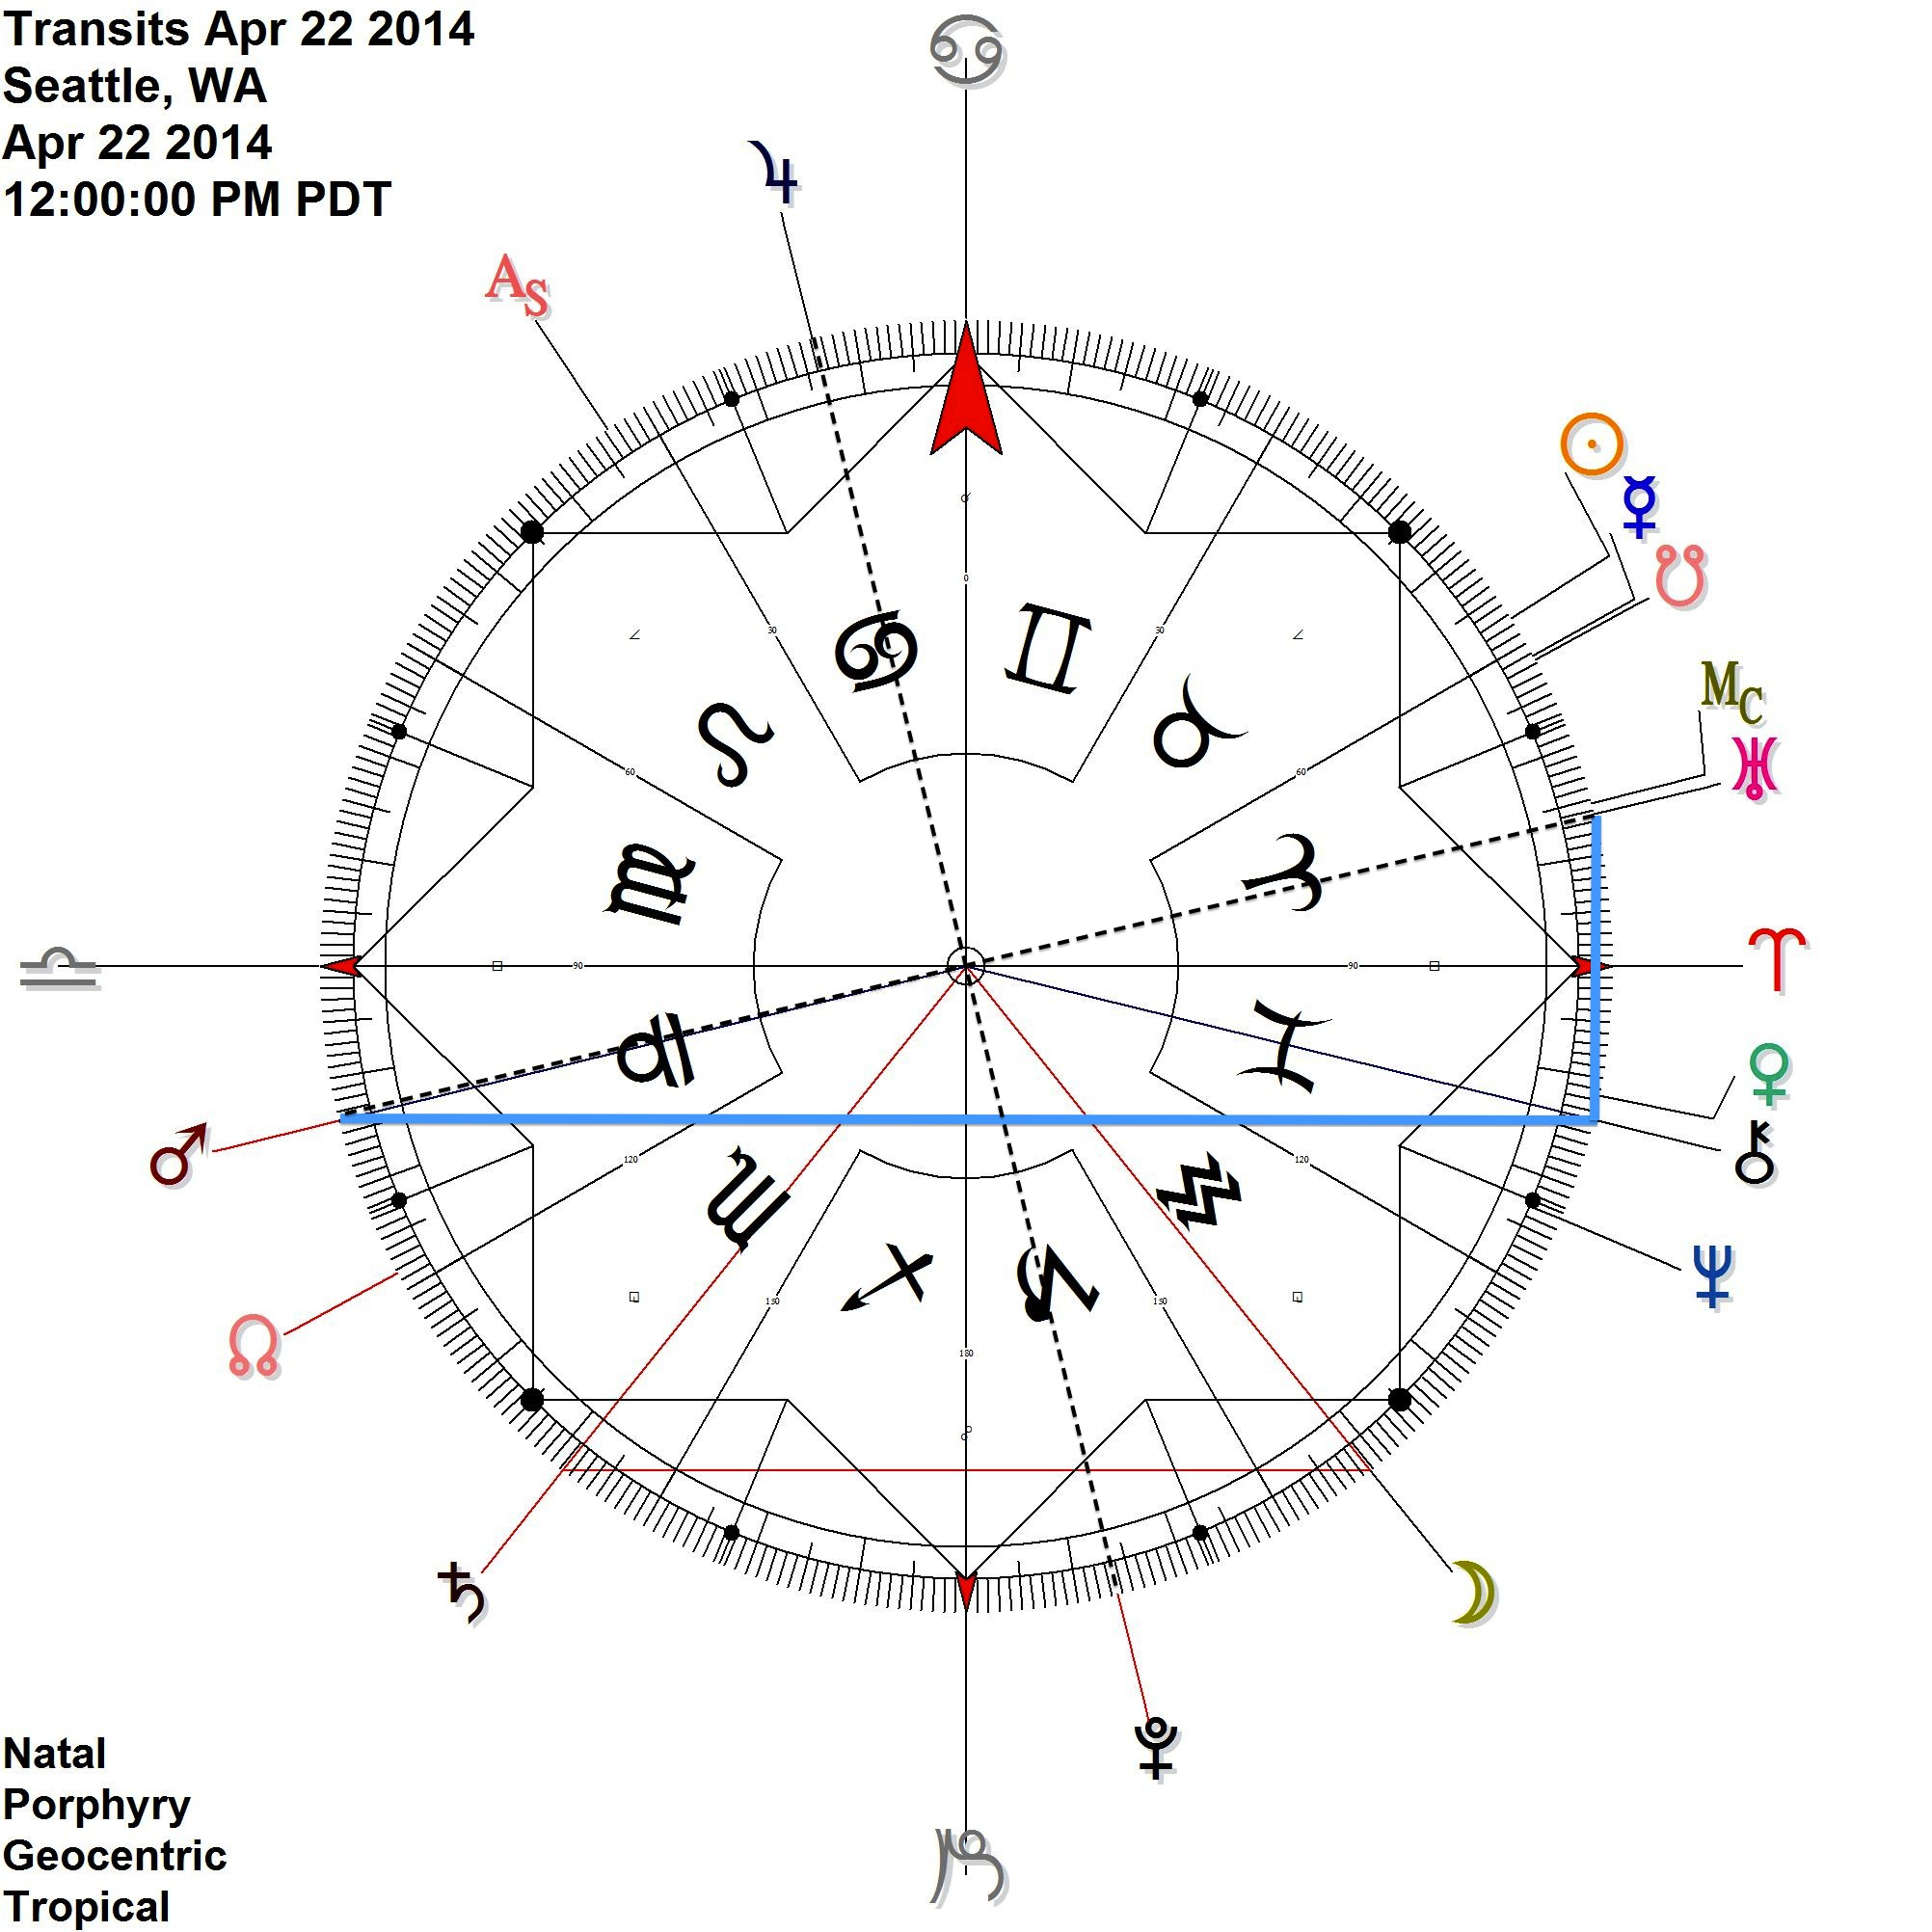 EARTH DAY Mars Chiron antiscia perfects (around 7pm) and Mars opposes Uranus (Uranus is contra-antiscia Chiron). All of this occurs during the Cardinal Grand Cross alignment. Wow.